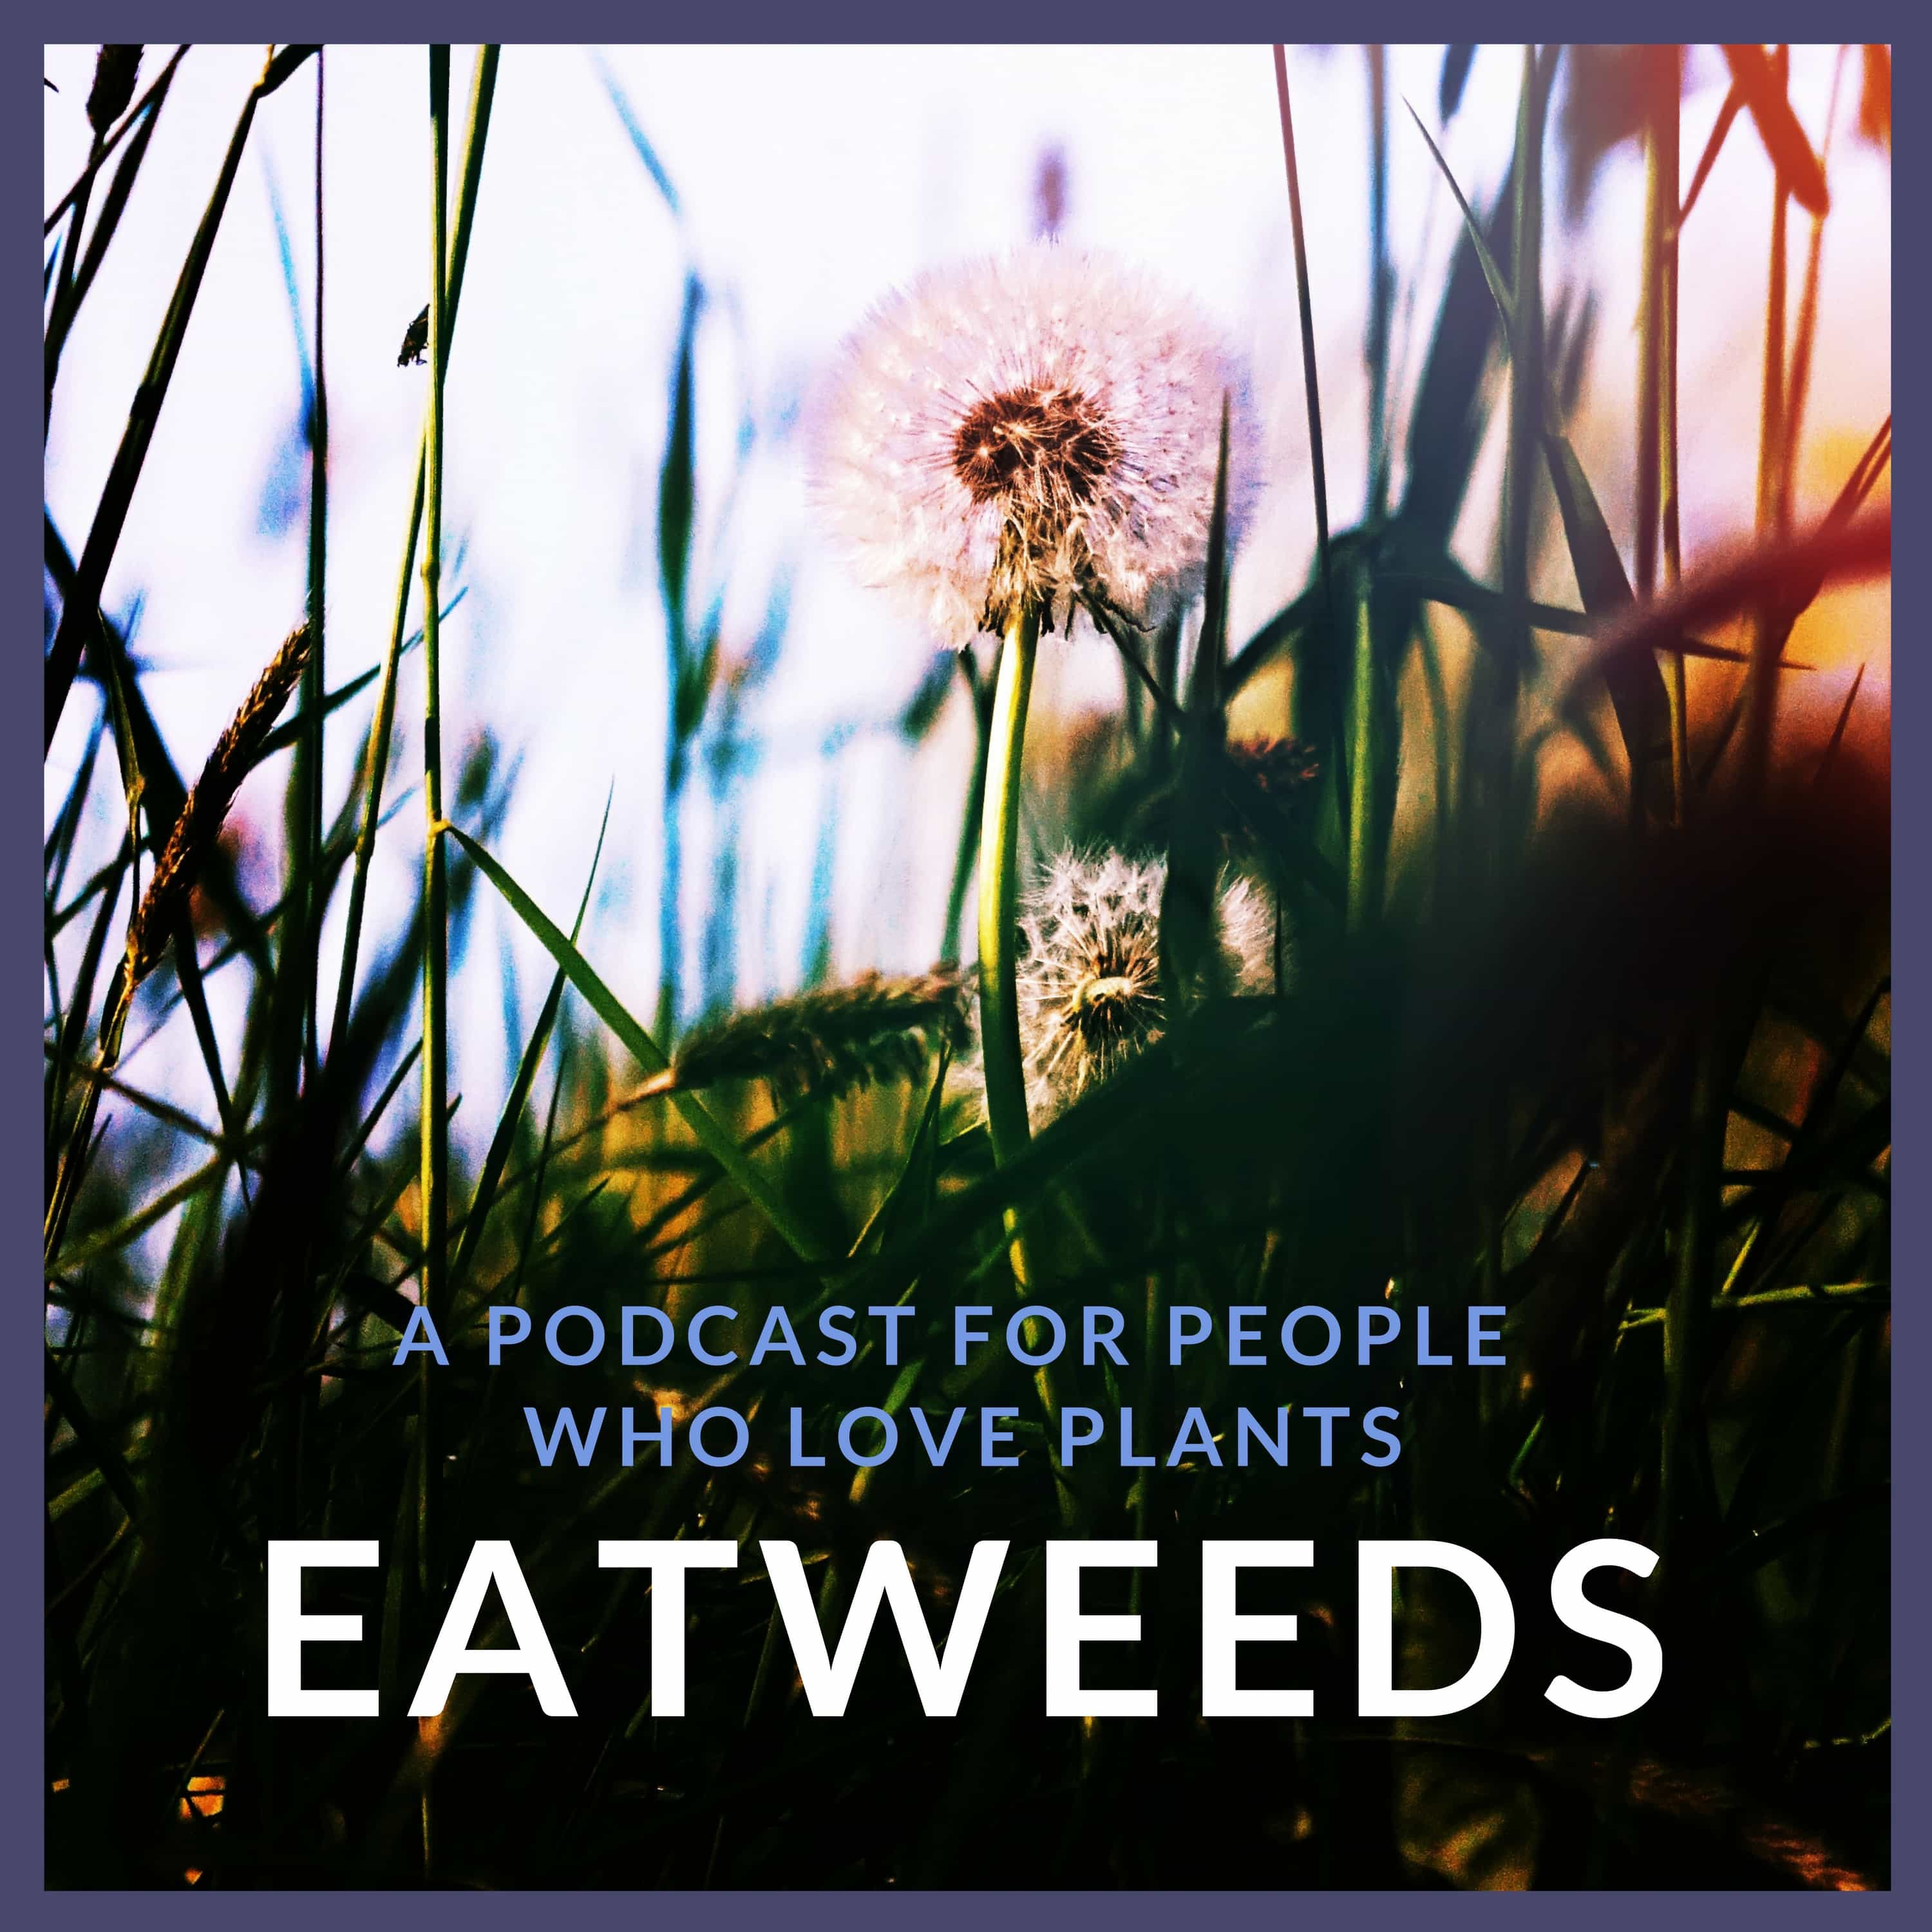 Eatweeds Podcast: For People Who Love Plants show art